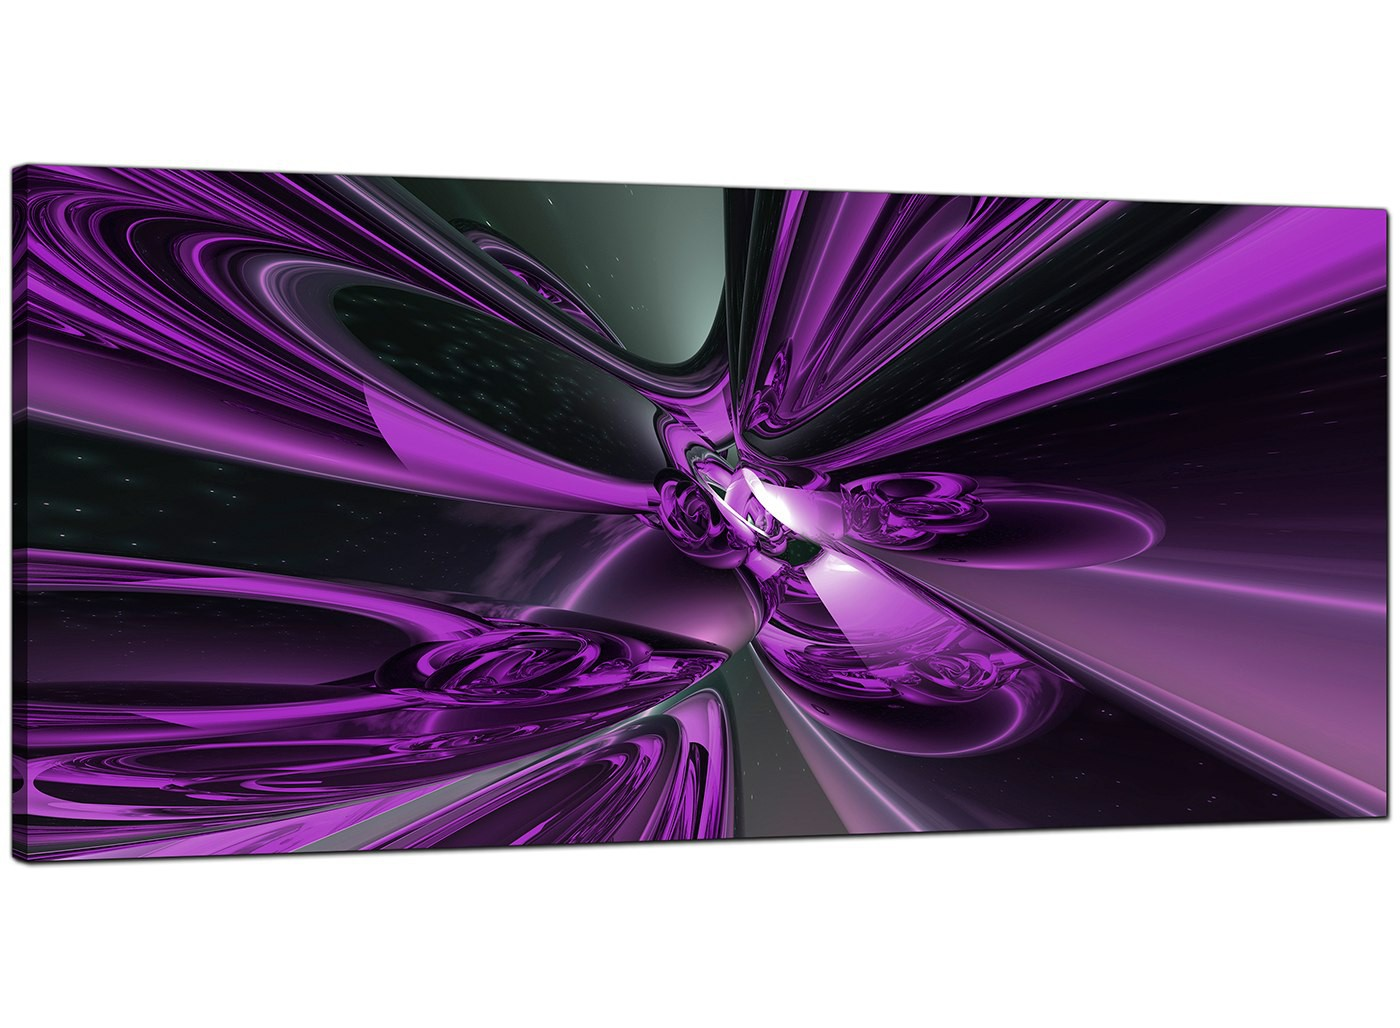 cheap 3 piece living room set benches in purple abstract canvas art (120cm x 50cm) - 'cenop'